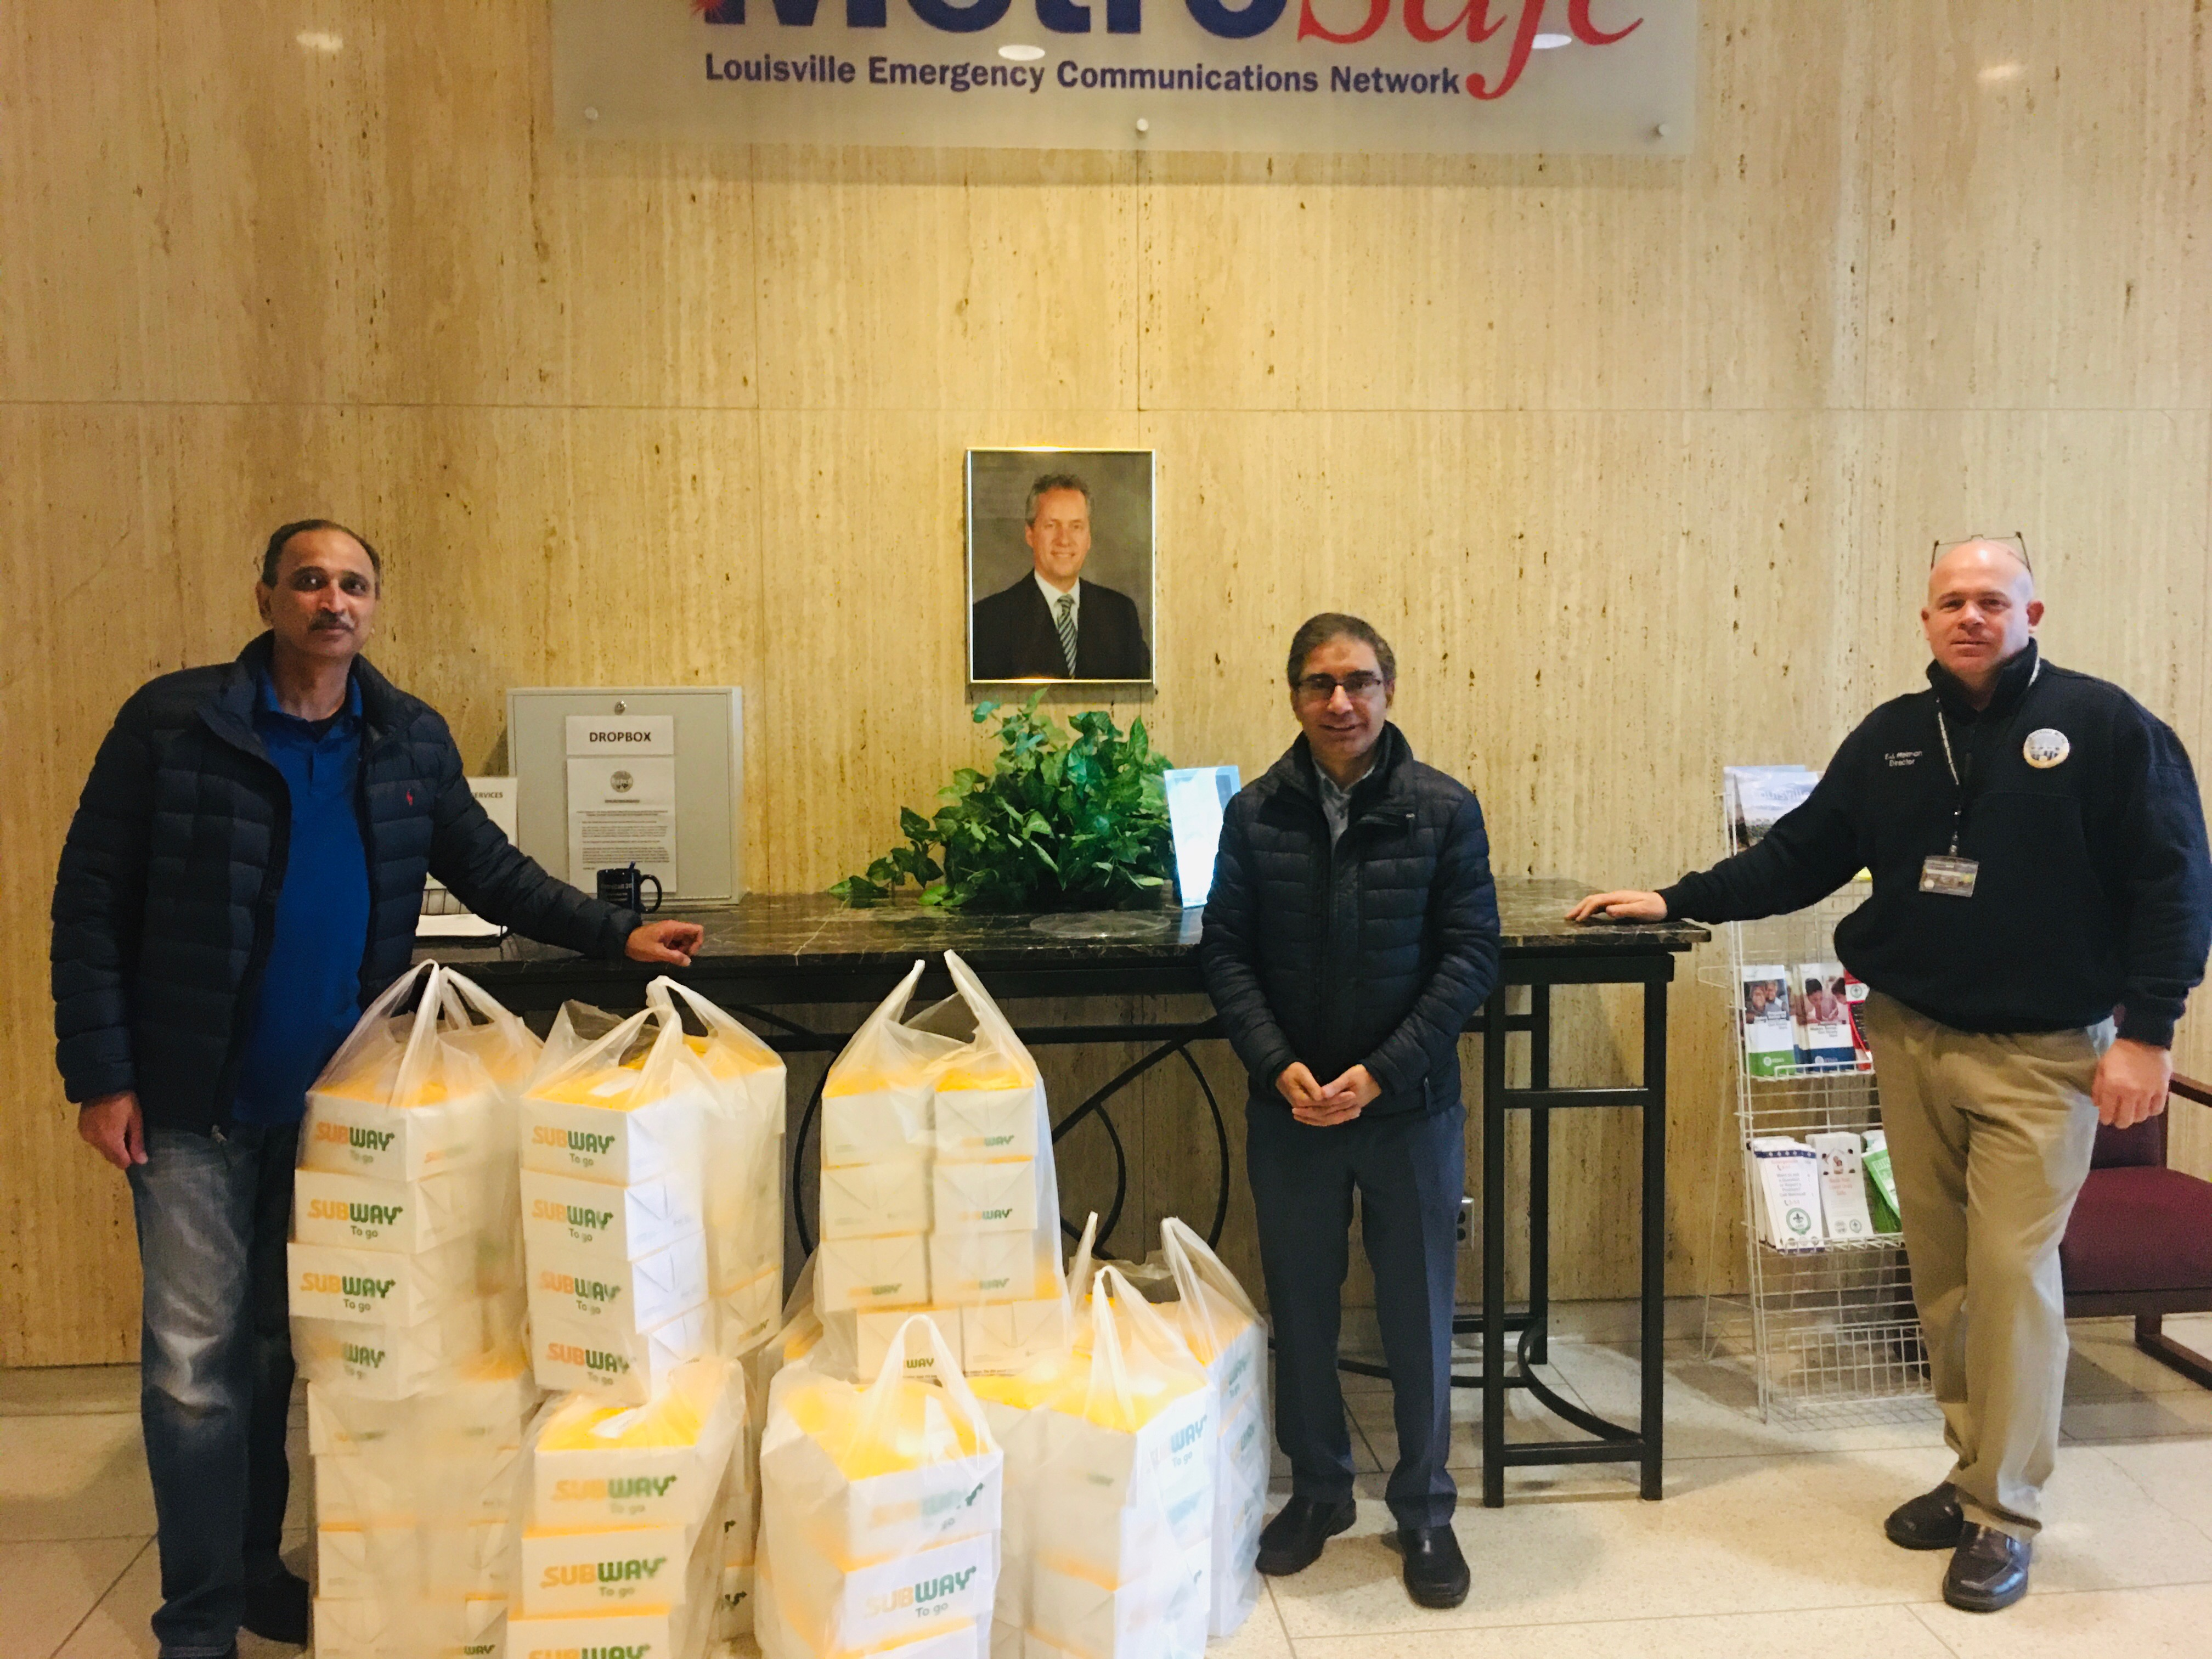 MAC Delivers Lunch to MetroSafe Emergency Communication